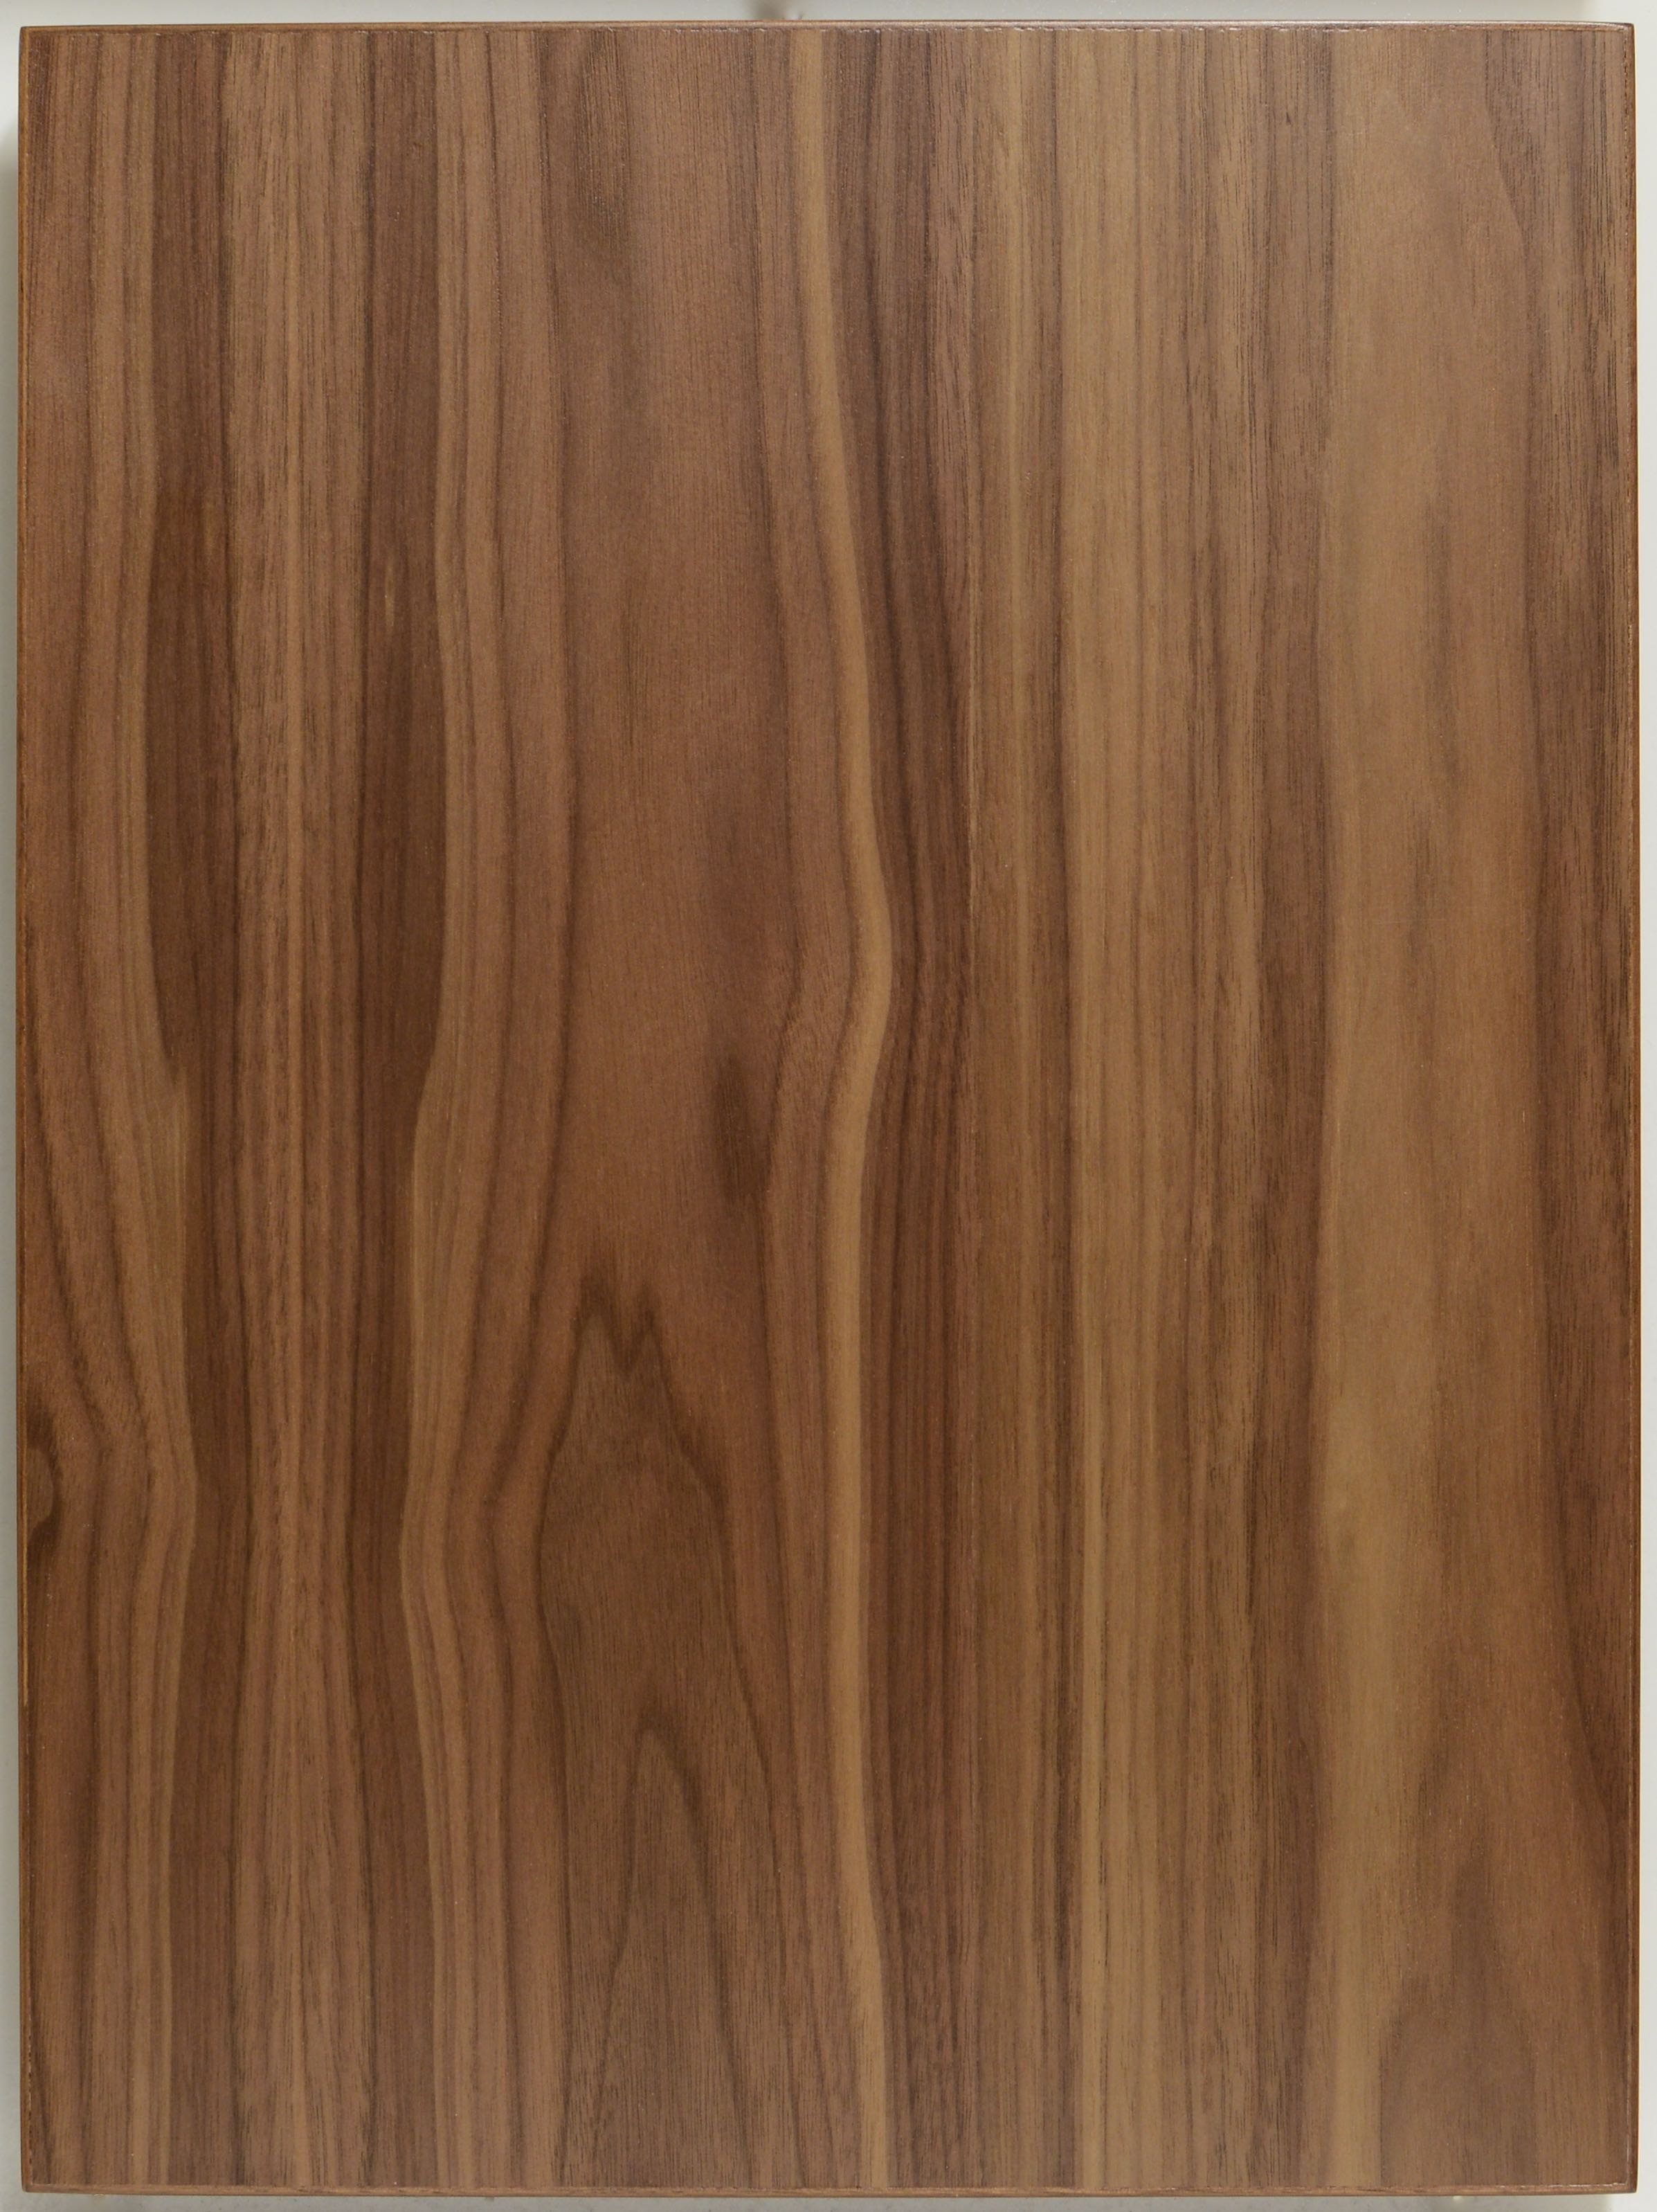 Modern Flat Cut Walnut Veneer Kitchen Cabinet Door By Allstyle